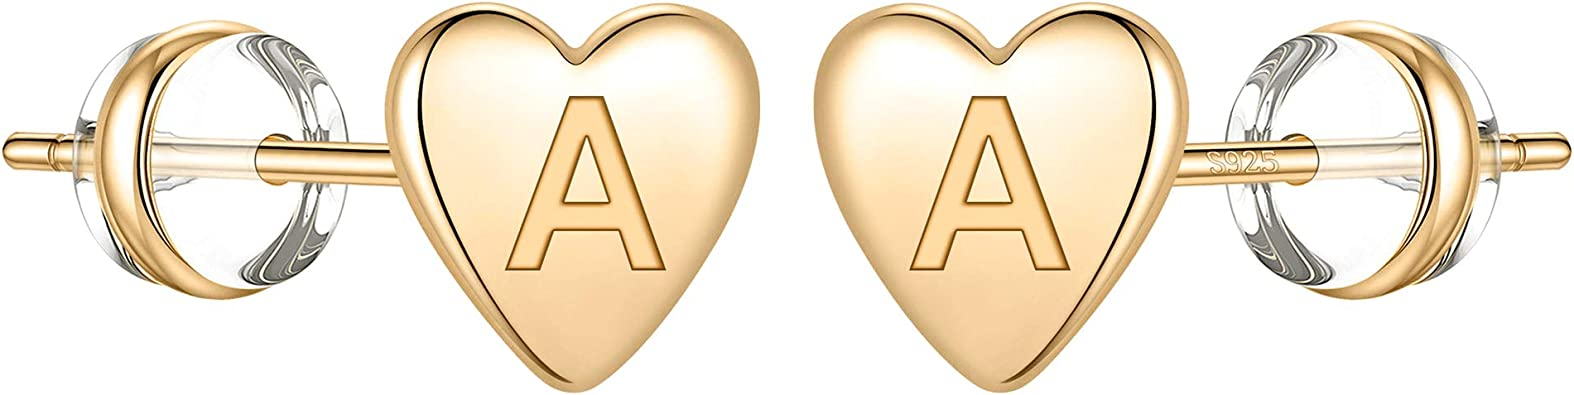 Heart Stud Earrings Dainty Little Heart Stud Earrings Heart Studs 14K Gold Filled and Sterling Silver Available in Rose Gold Filled